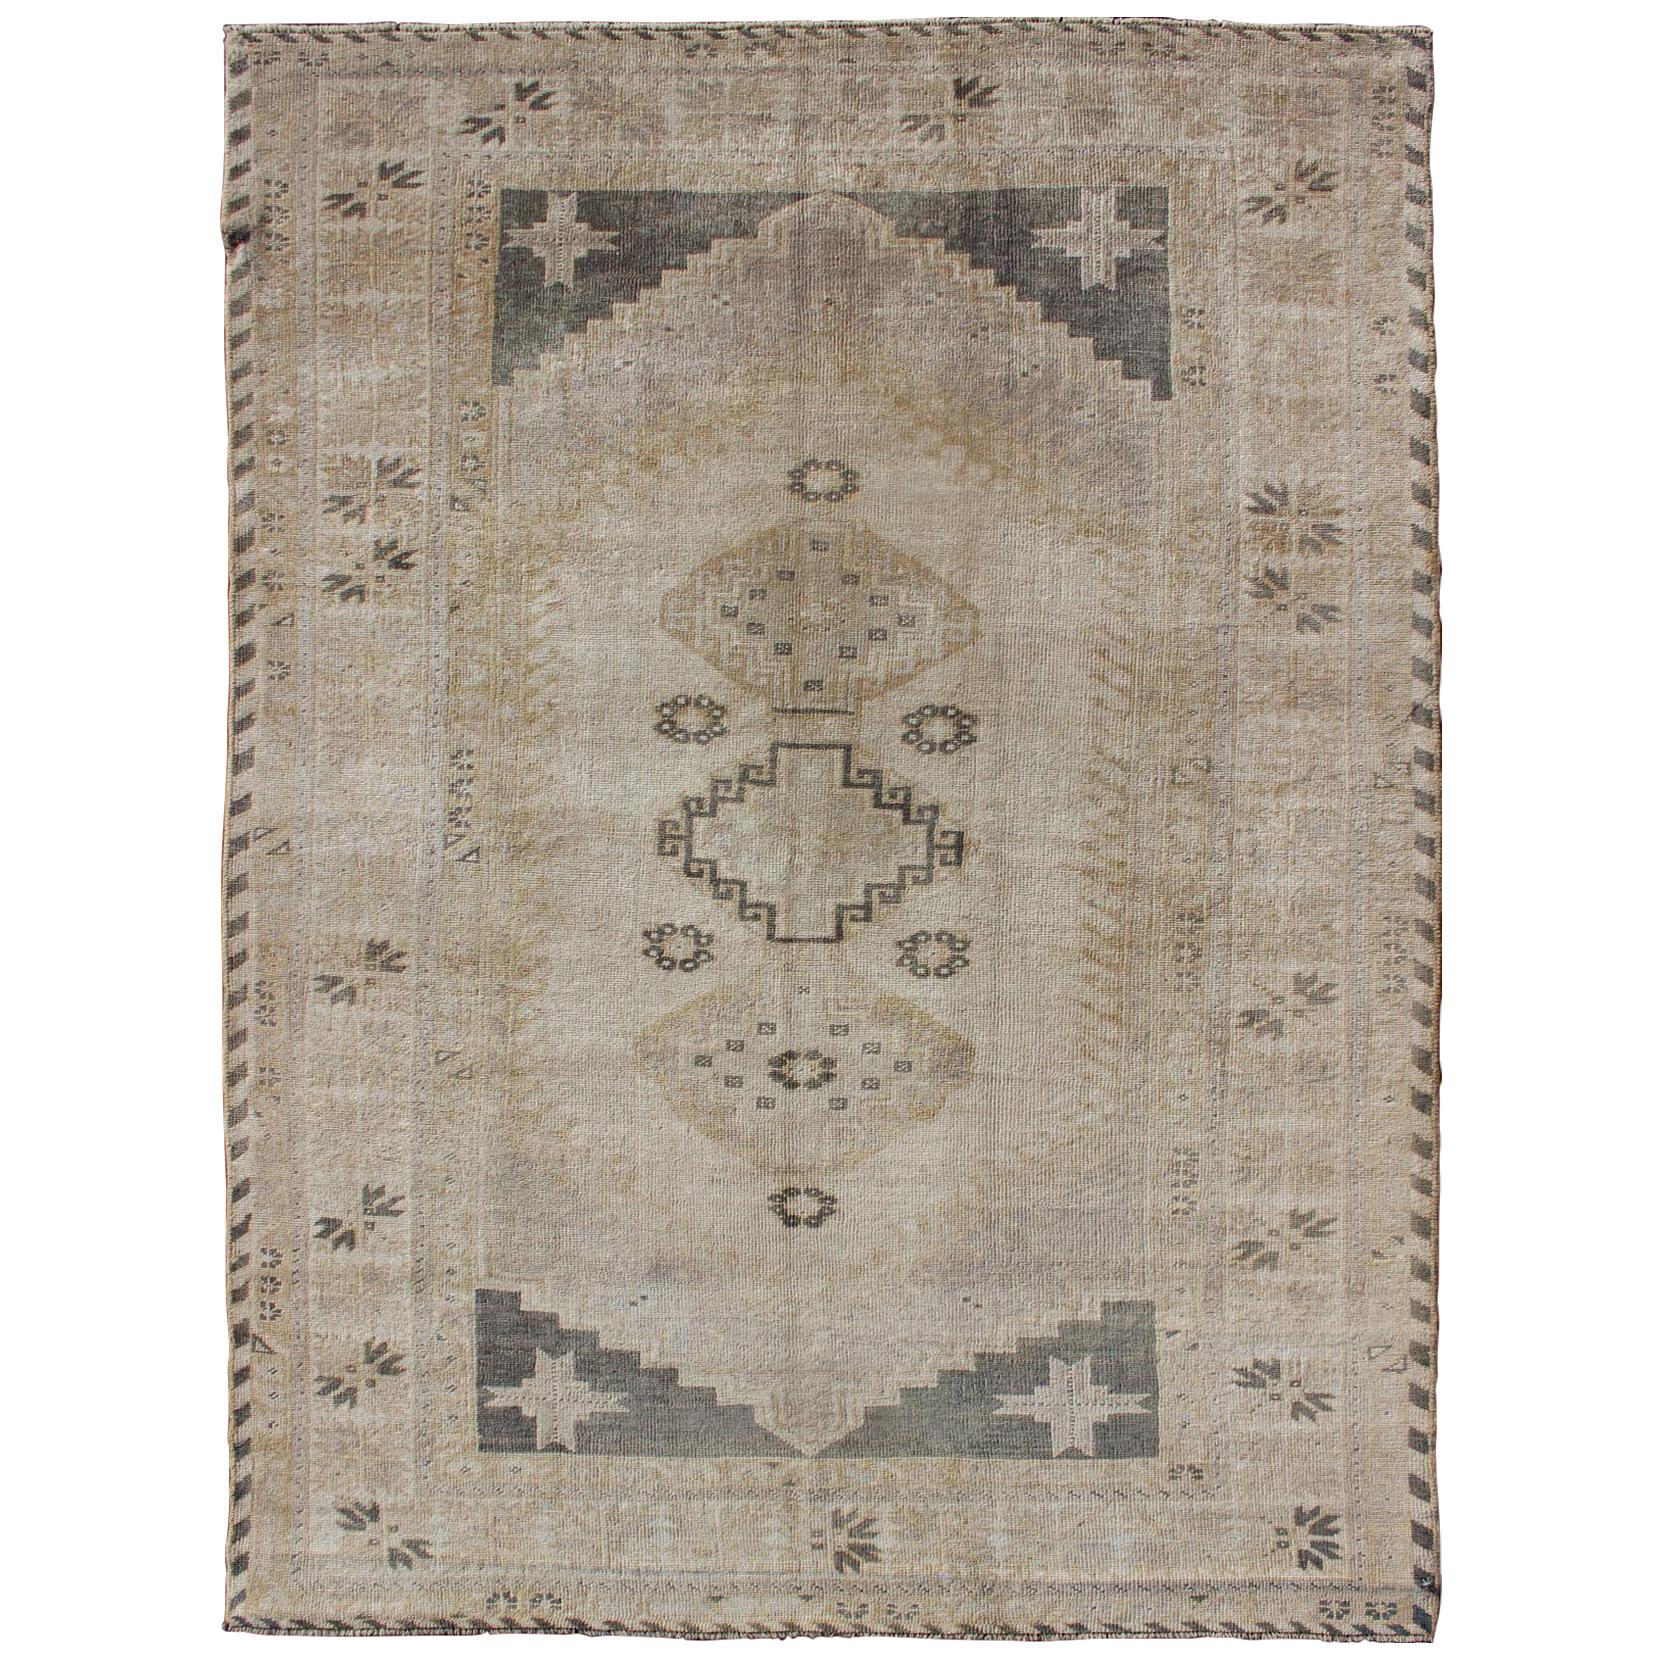 Turkish Vintage Oushak Rug with Tribal Pattern in Gray Green and Neutral Tones